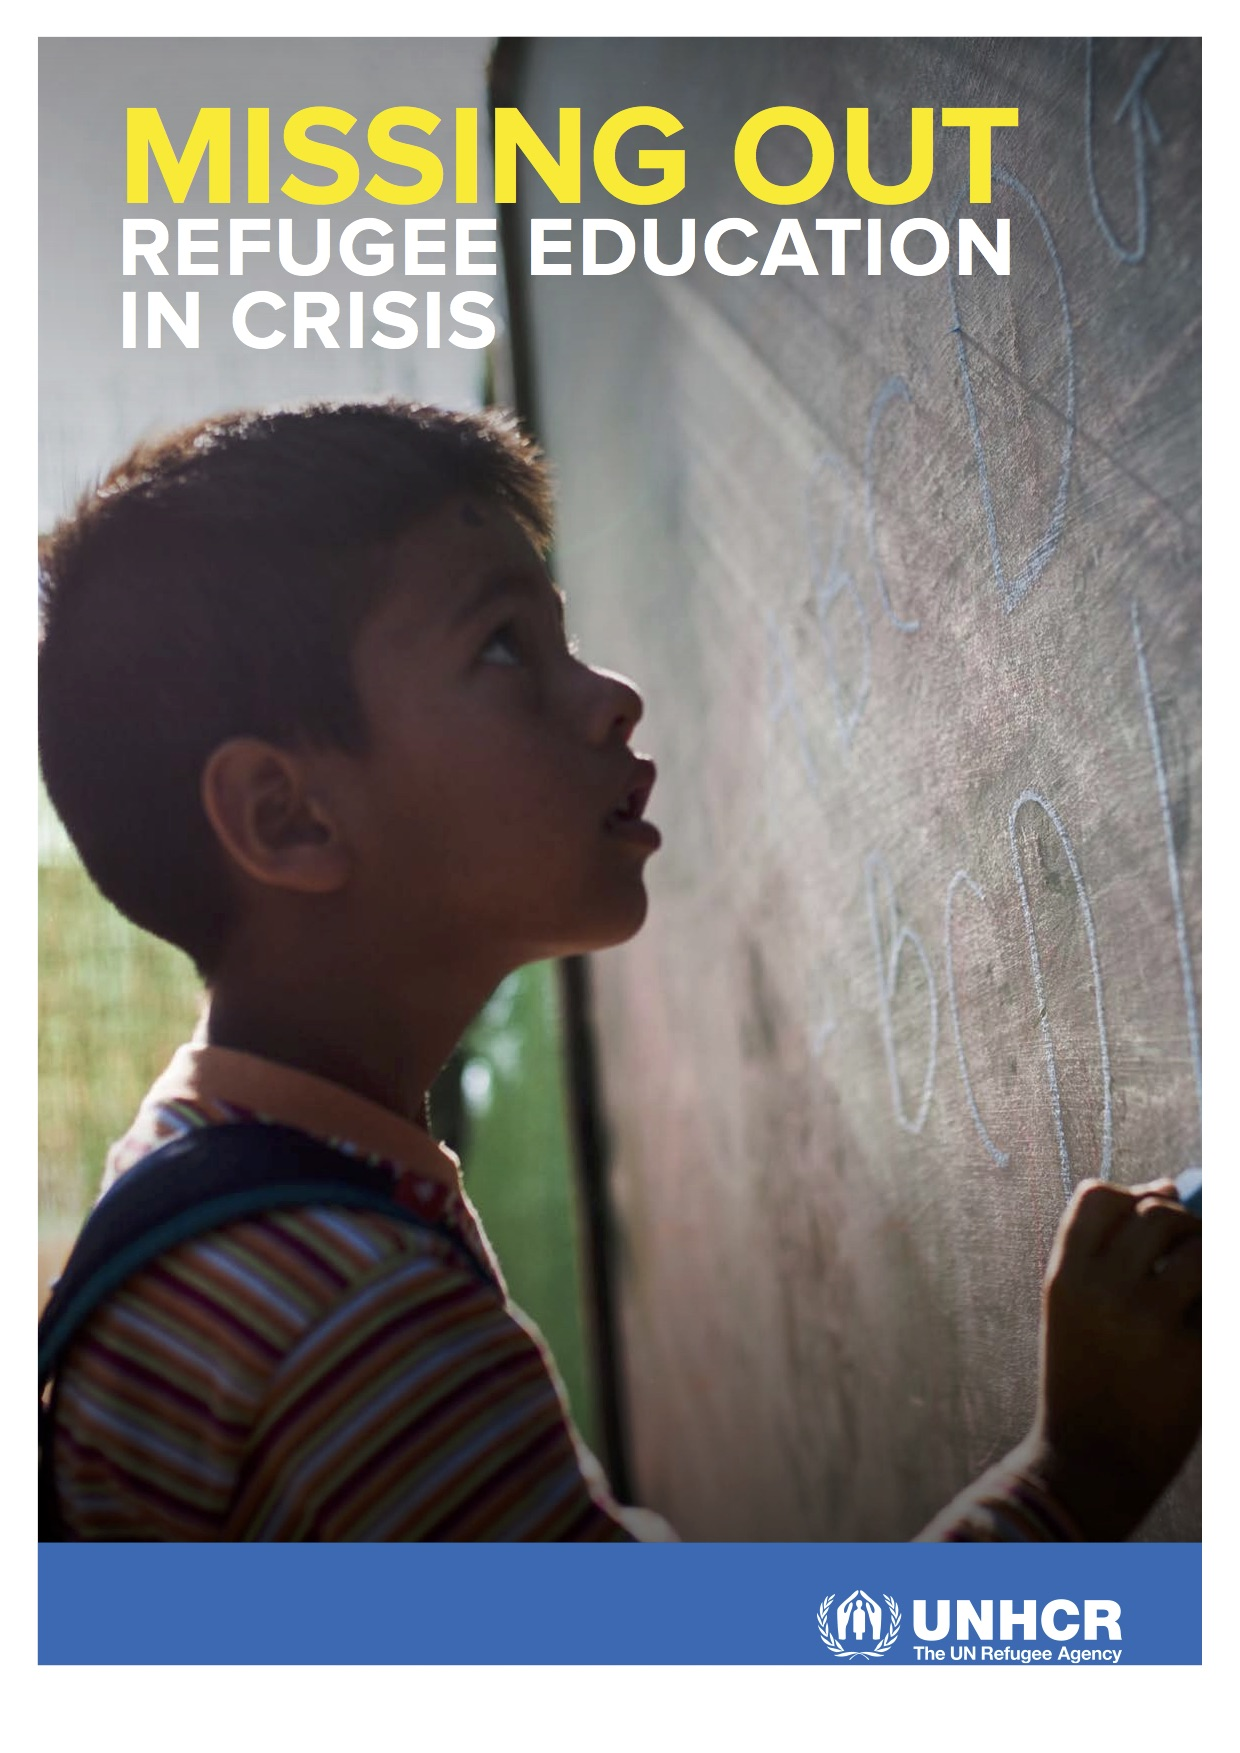 2016 UNHRC Missing Out Refugee Education in Crisis